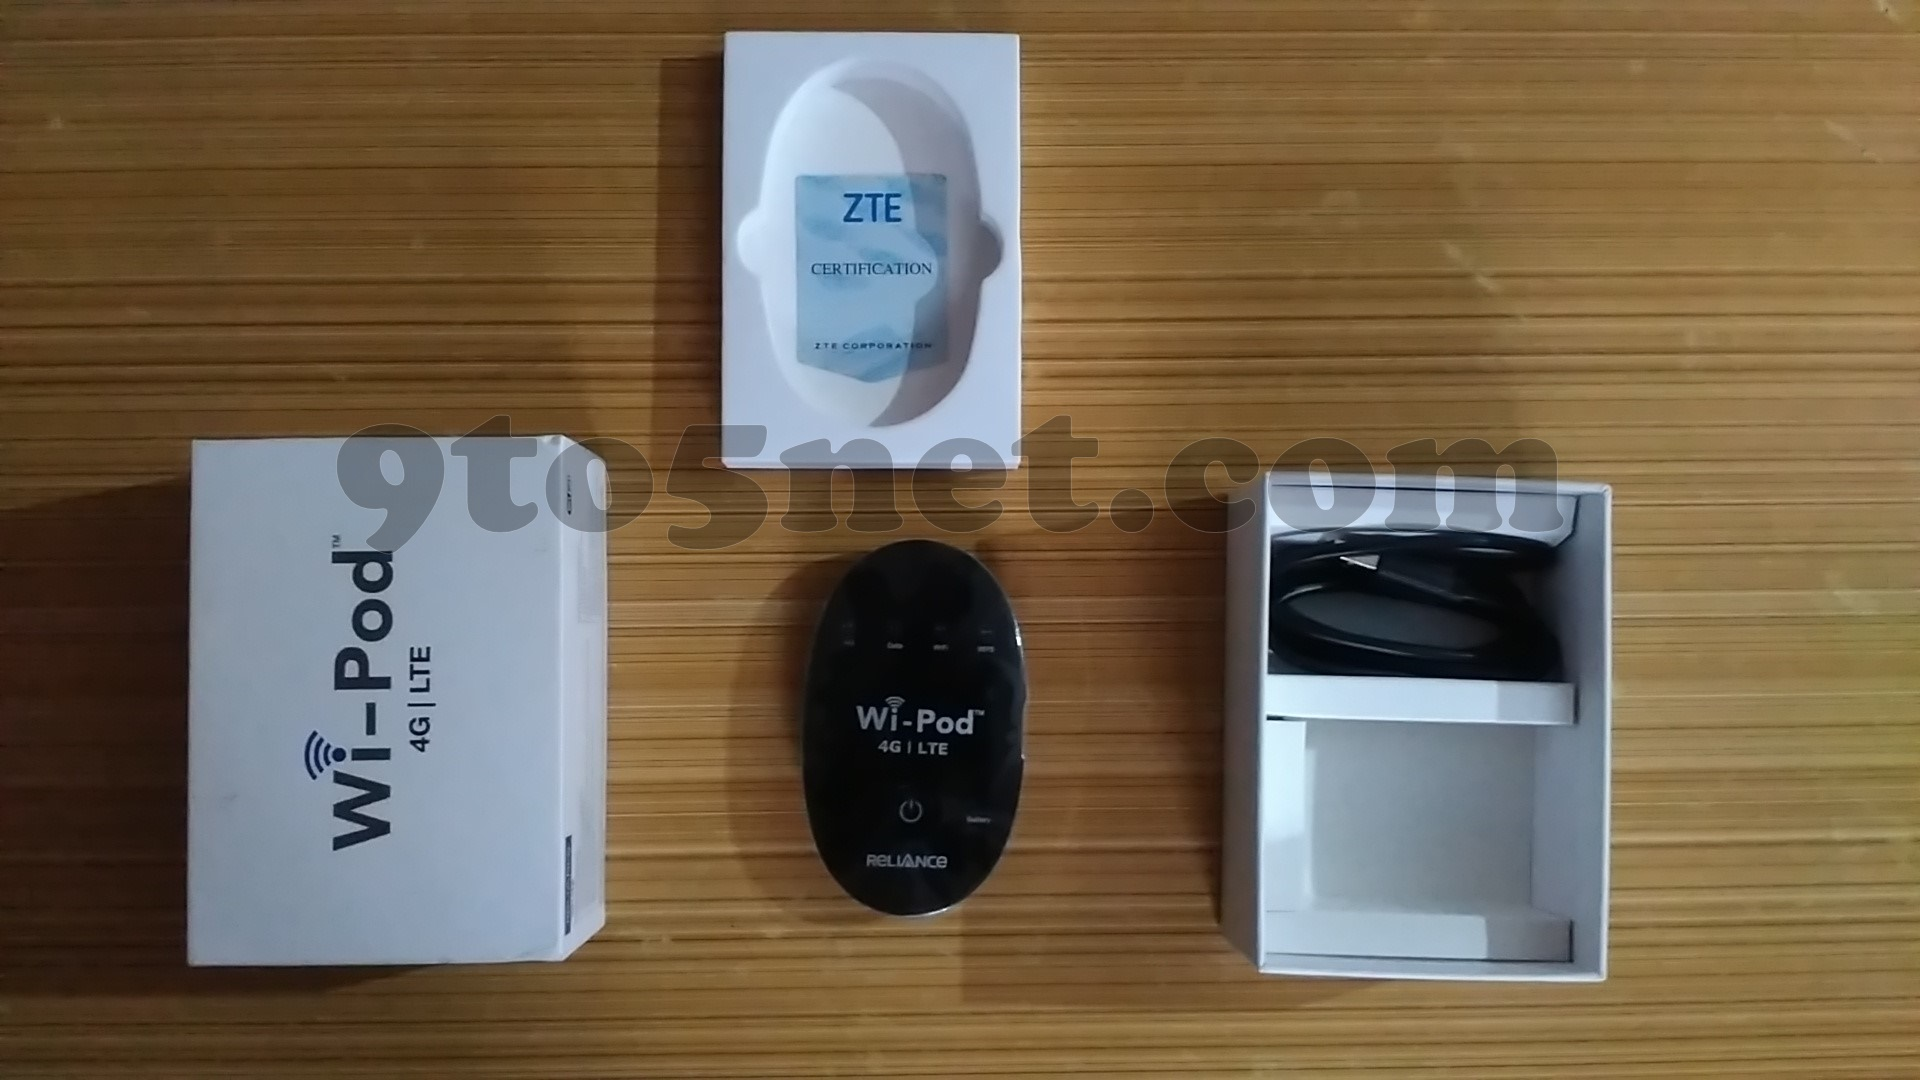 Review: Reliance Wi-Pod 4G LTE dongle-cum-pocket router with Wi-Fi